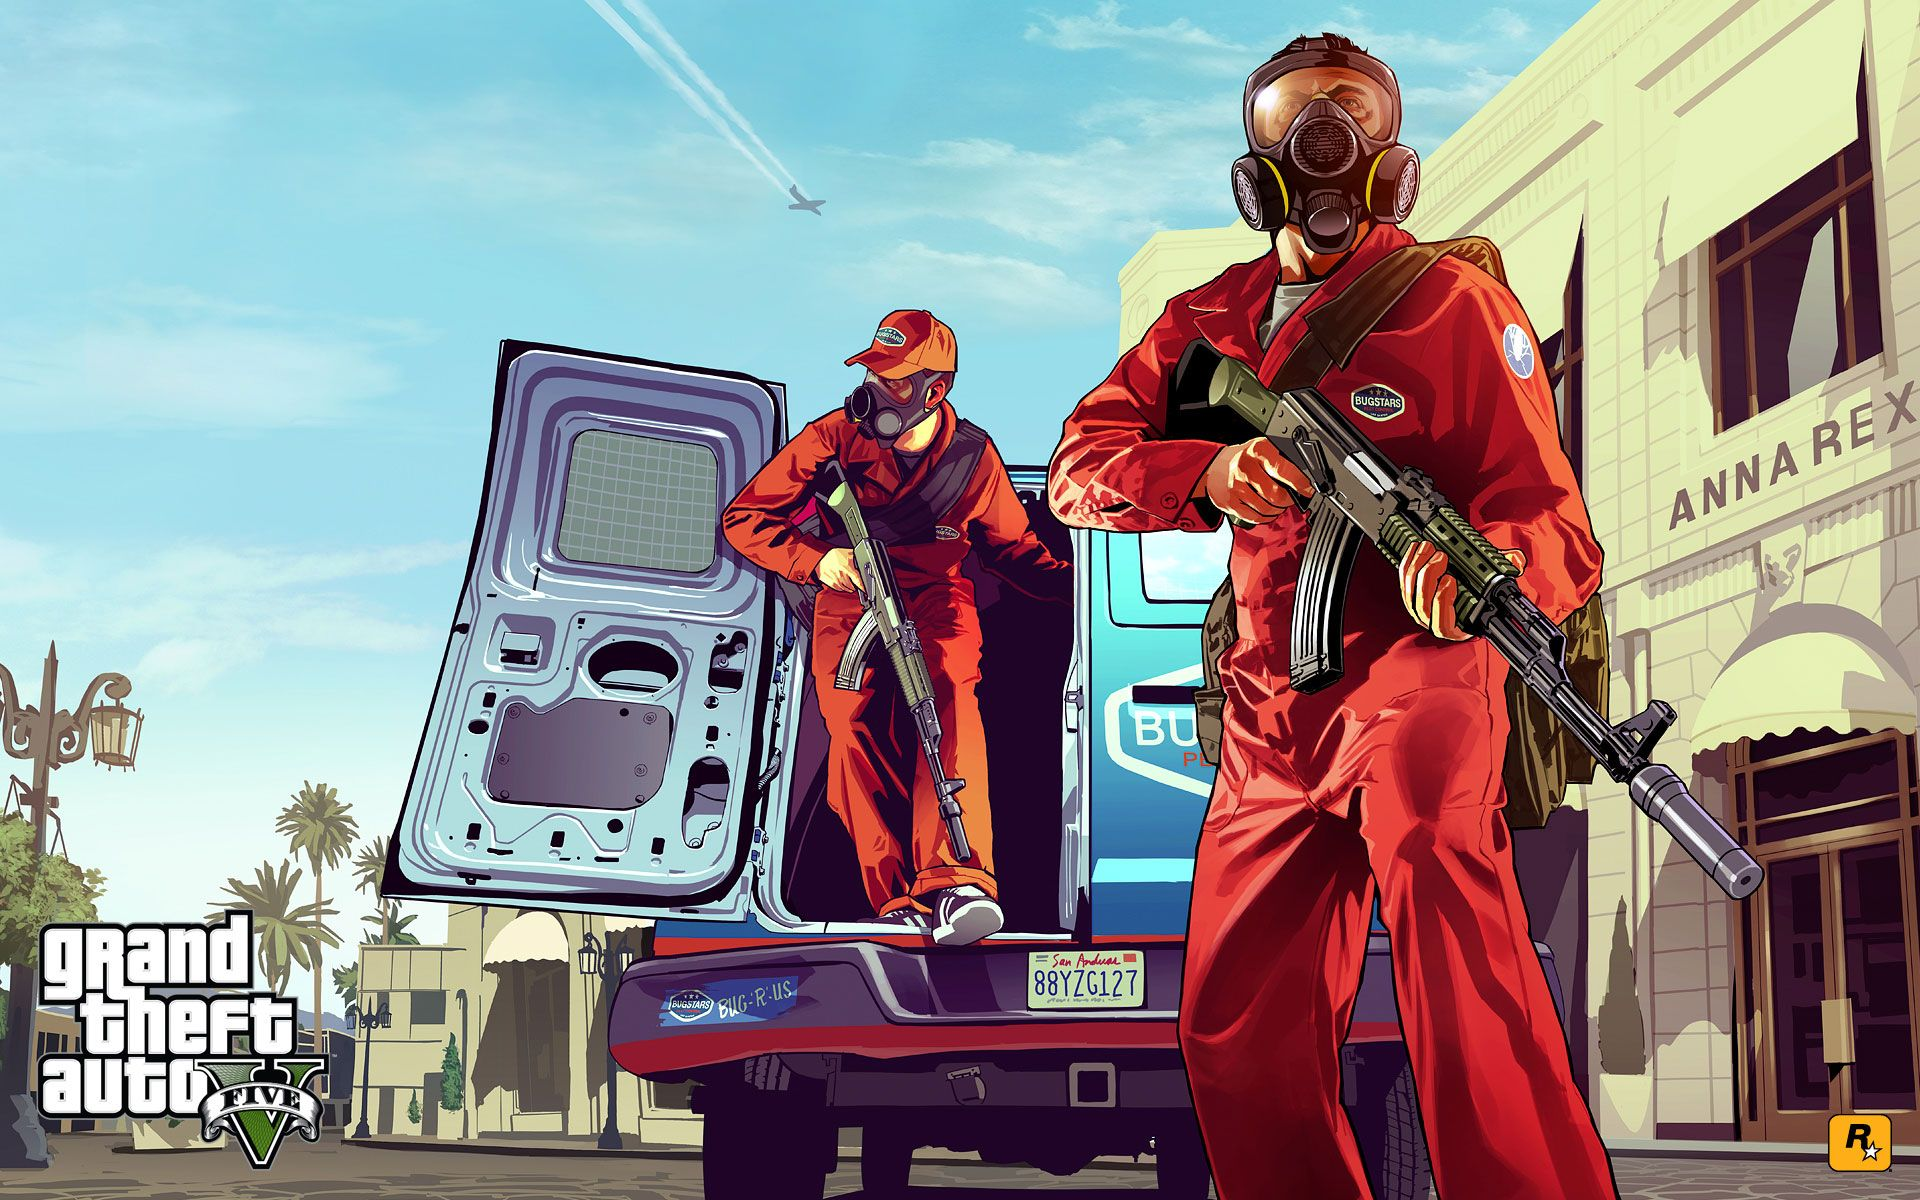 First Grand Theft Auto V Art Released News www